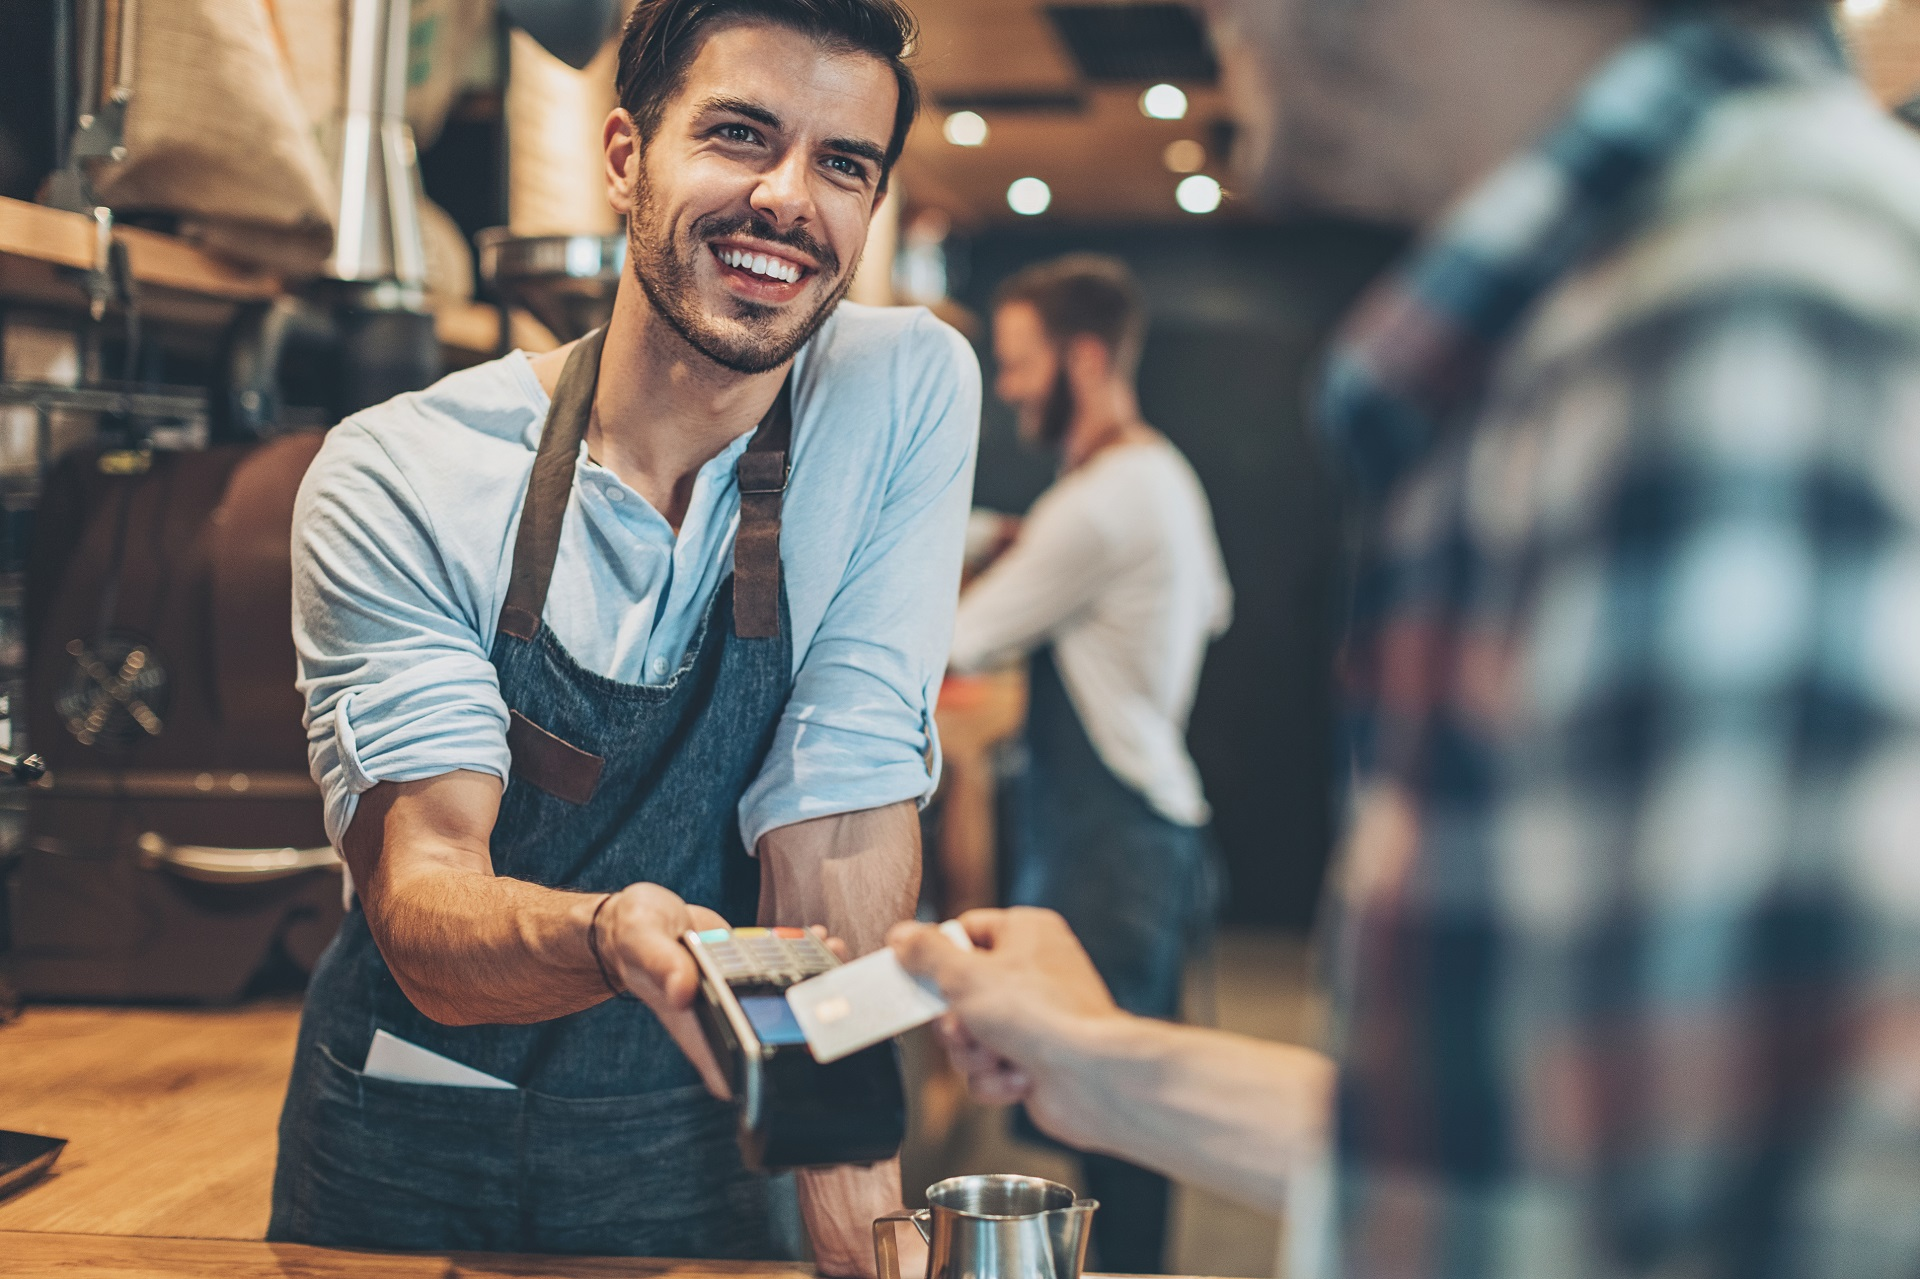 New Stats Reveal Card Payments Have Overtaken Cash